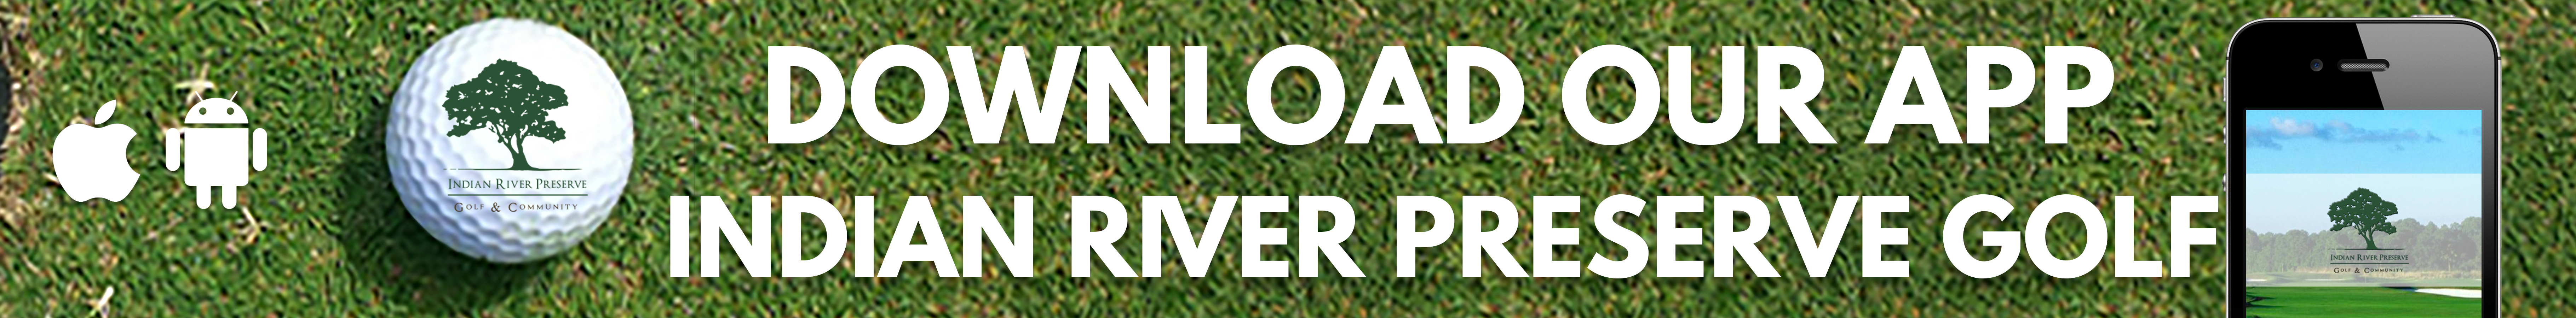 Indian River Preserve Golf App